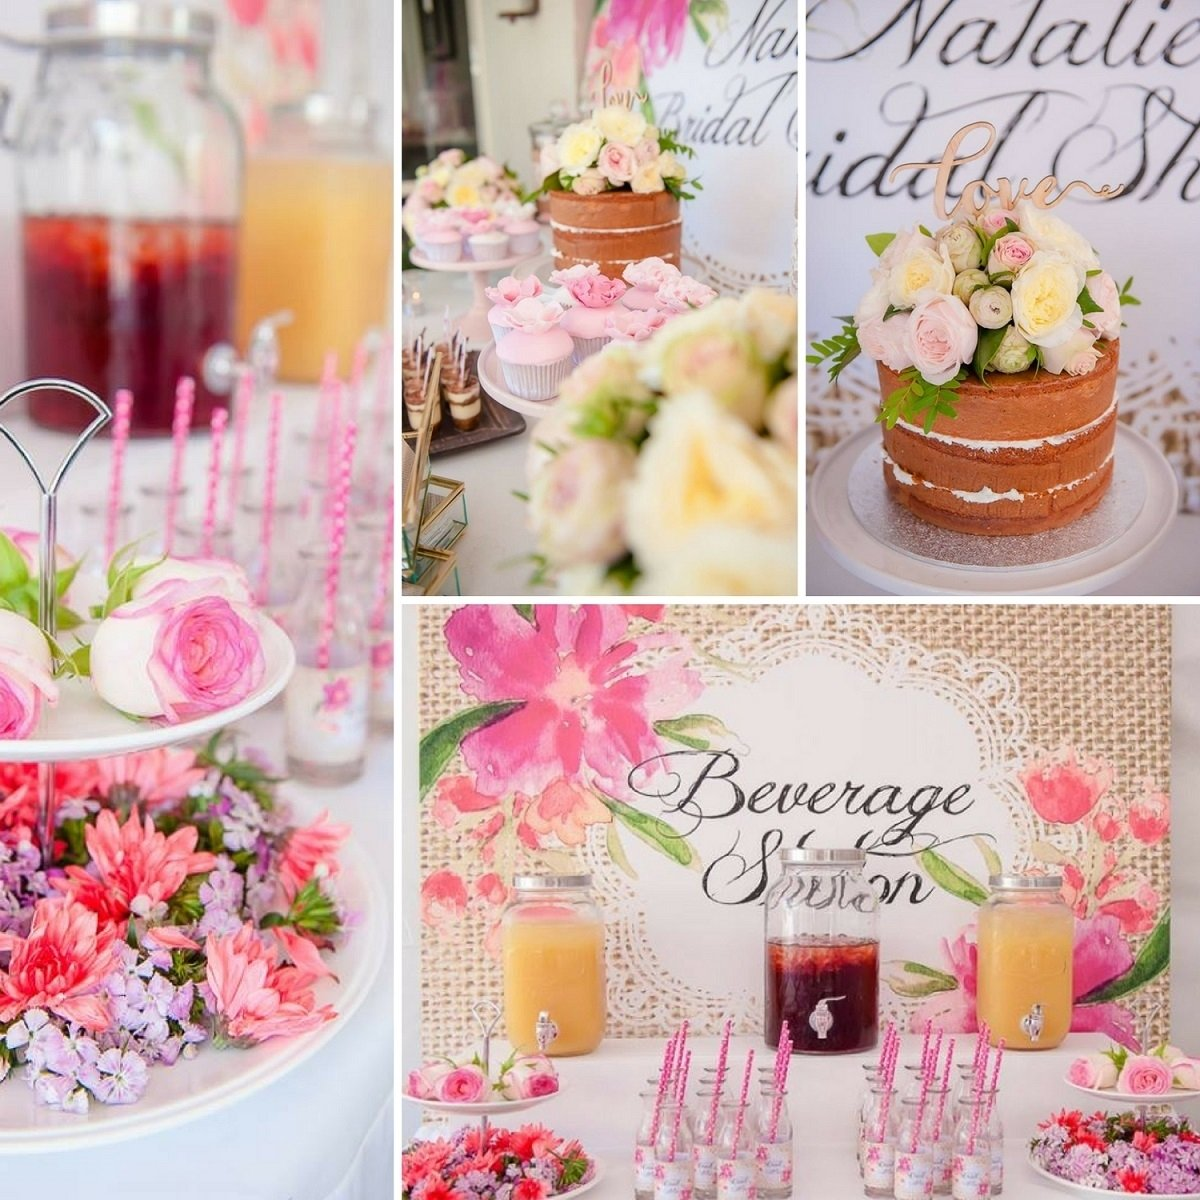 10 Nice Bridal Shower Ideas And Themes floral pastel bridal shower bridal shower ideas themes 2020